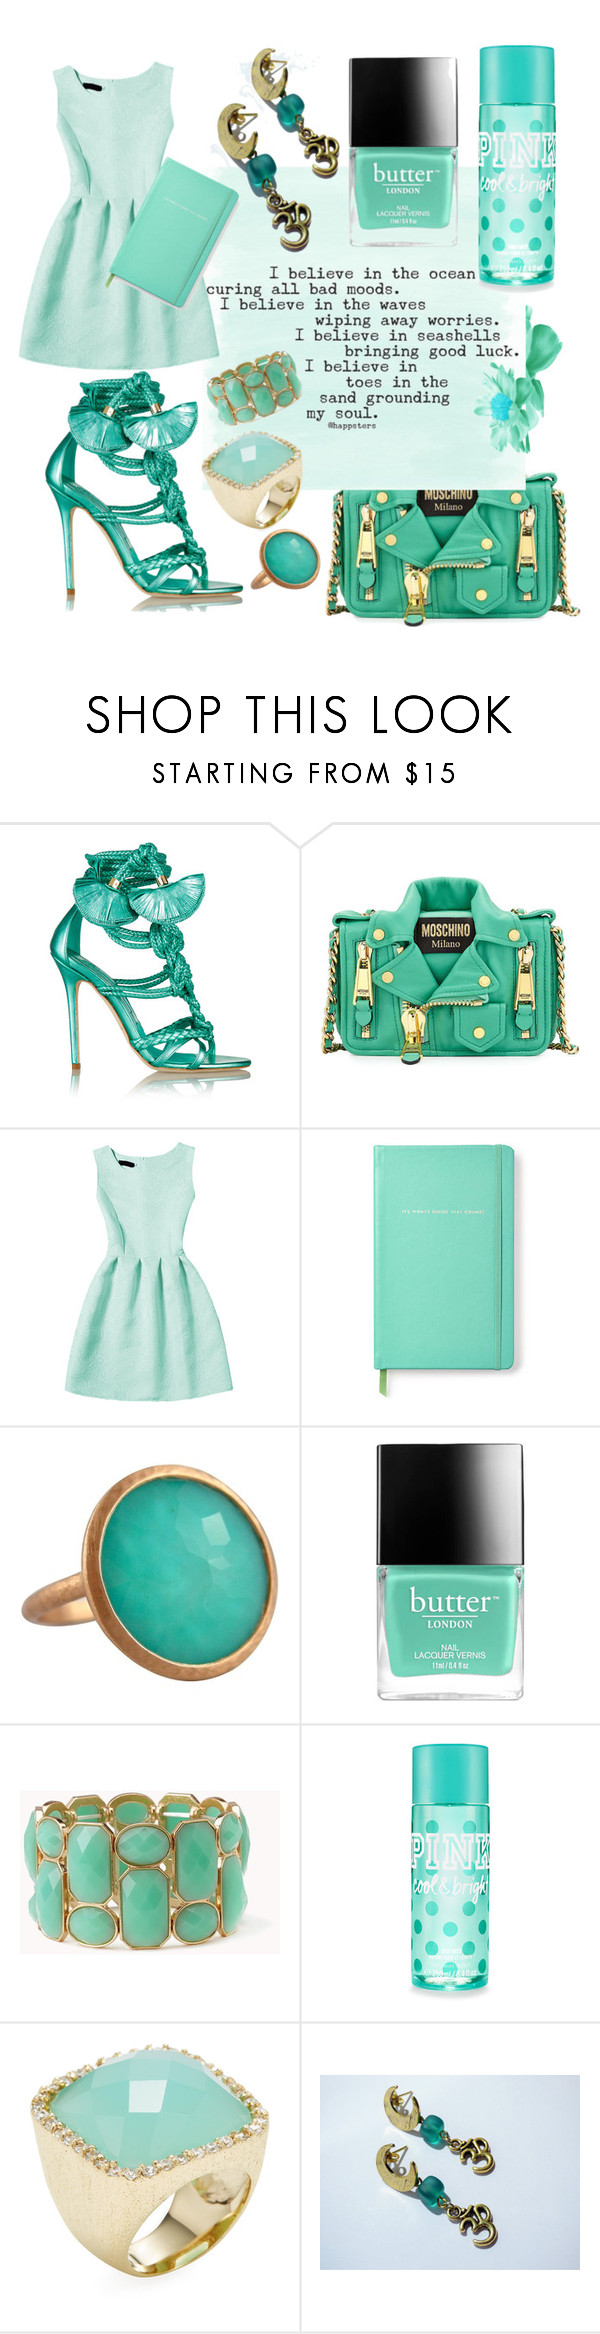 """""""Turquoise Vibes"""" by anagorozpe ❤ liked on Polyvore featuring Brian Atwood, Moschino, WithChic, Kate Spade, Jona, Butter London, Forever 21 and Rivka Friedman"""